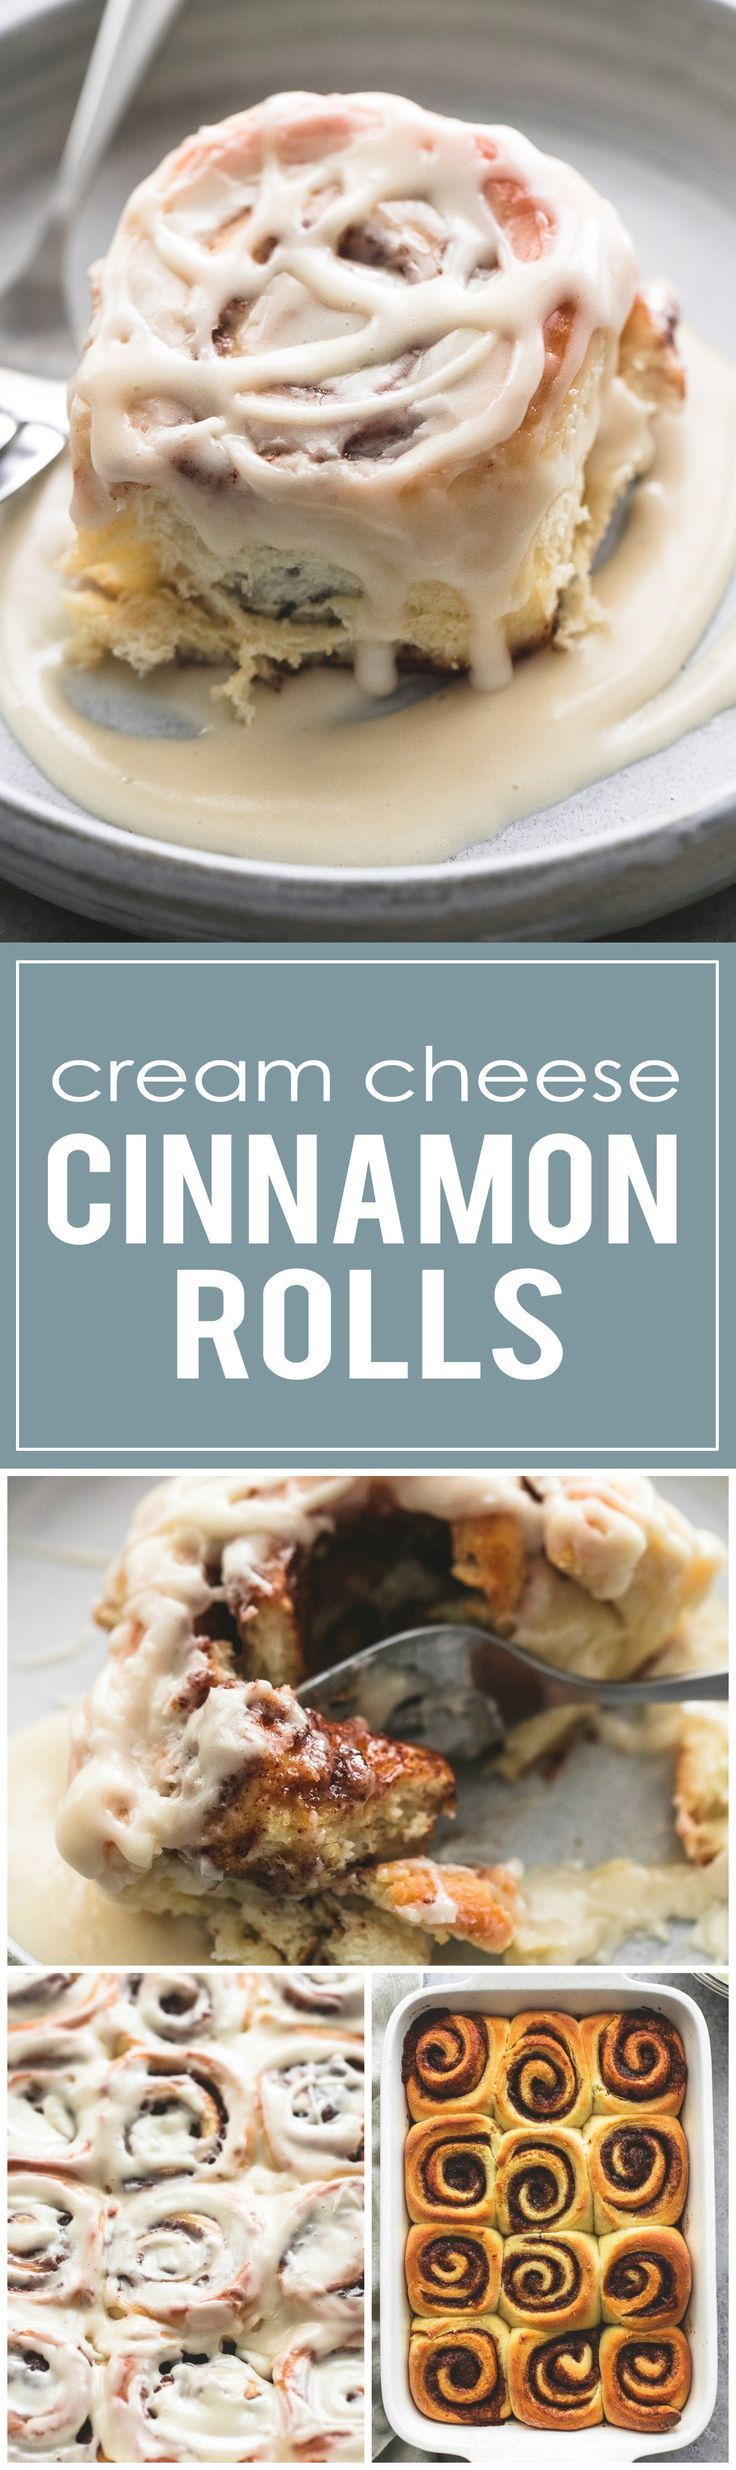 Easy One Hour Cream Cheese Cinnamon rolls are extra soft, super fluffy, and more flavorful - and they're ready in just 60 minutes! | http://lecremedelacrumb.com